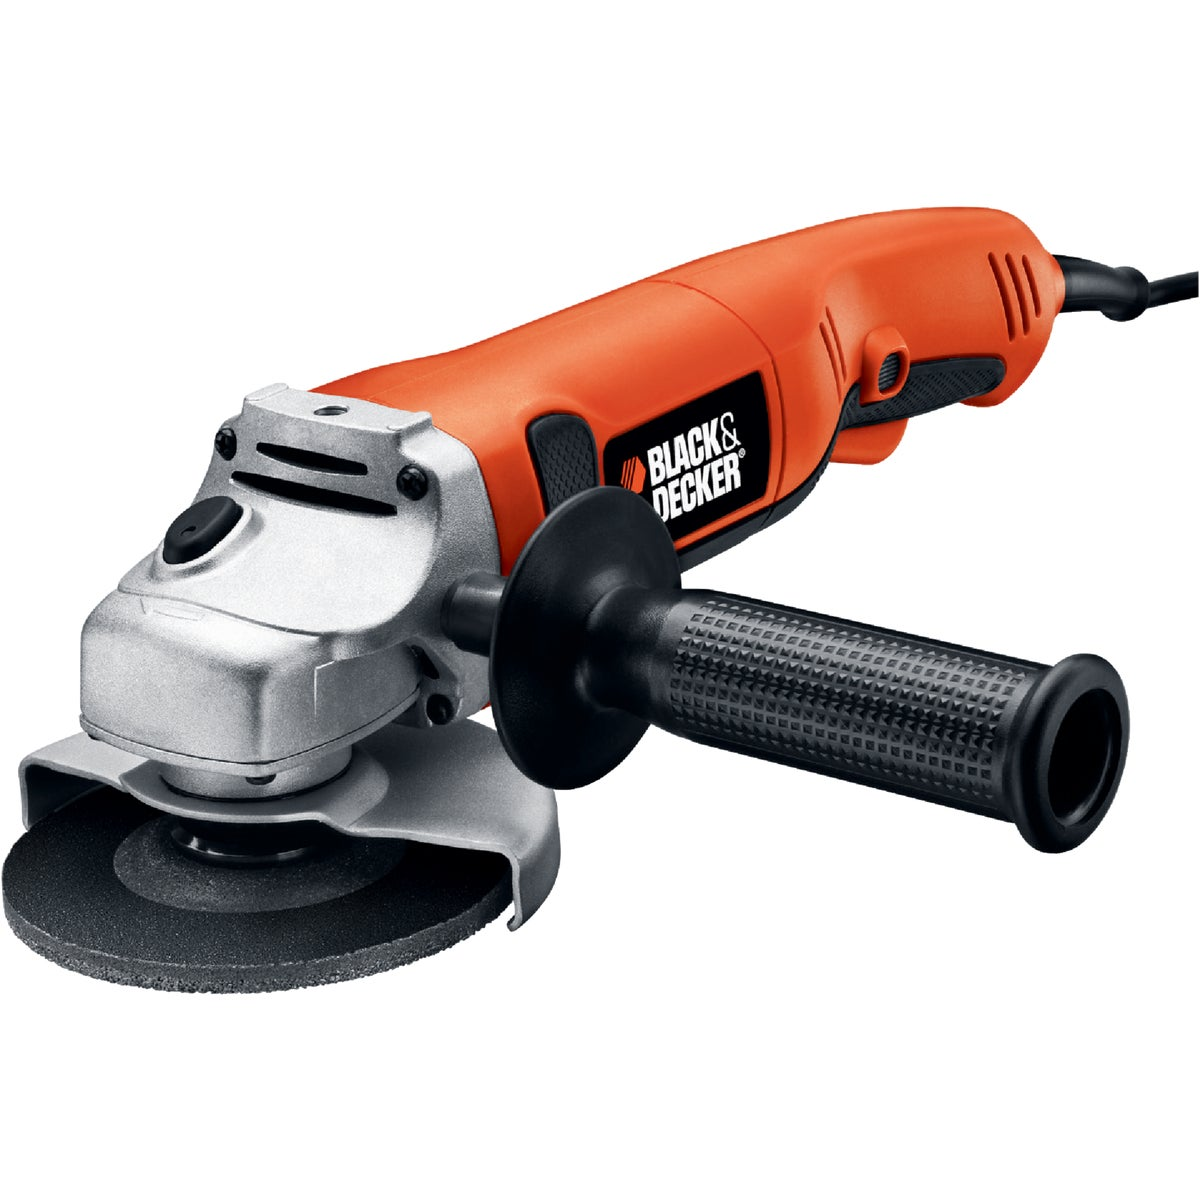 Corded Power Tools - Misc